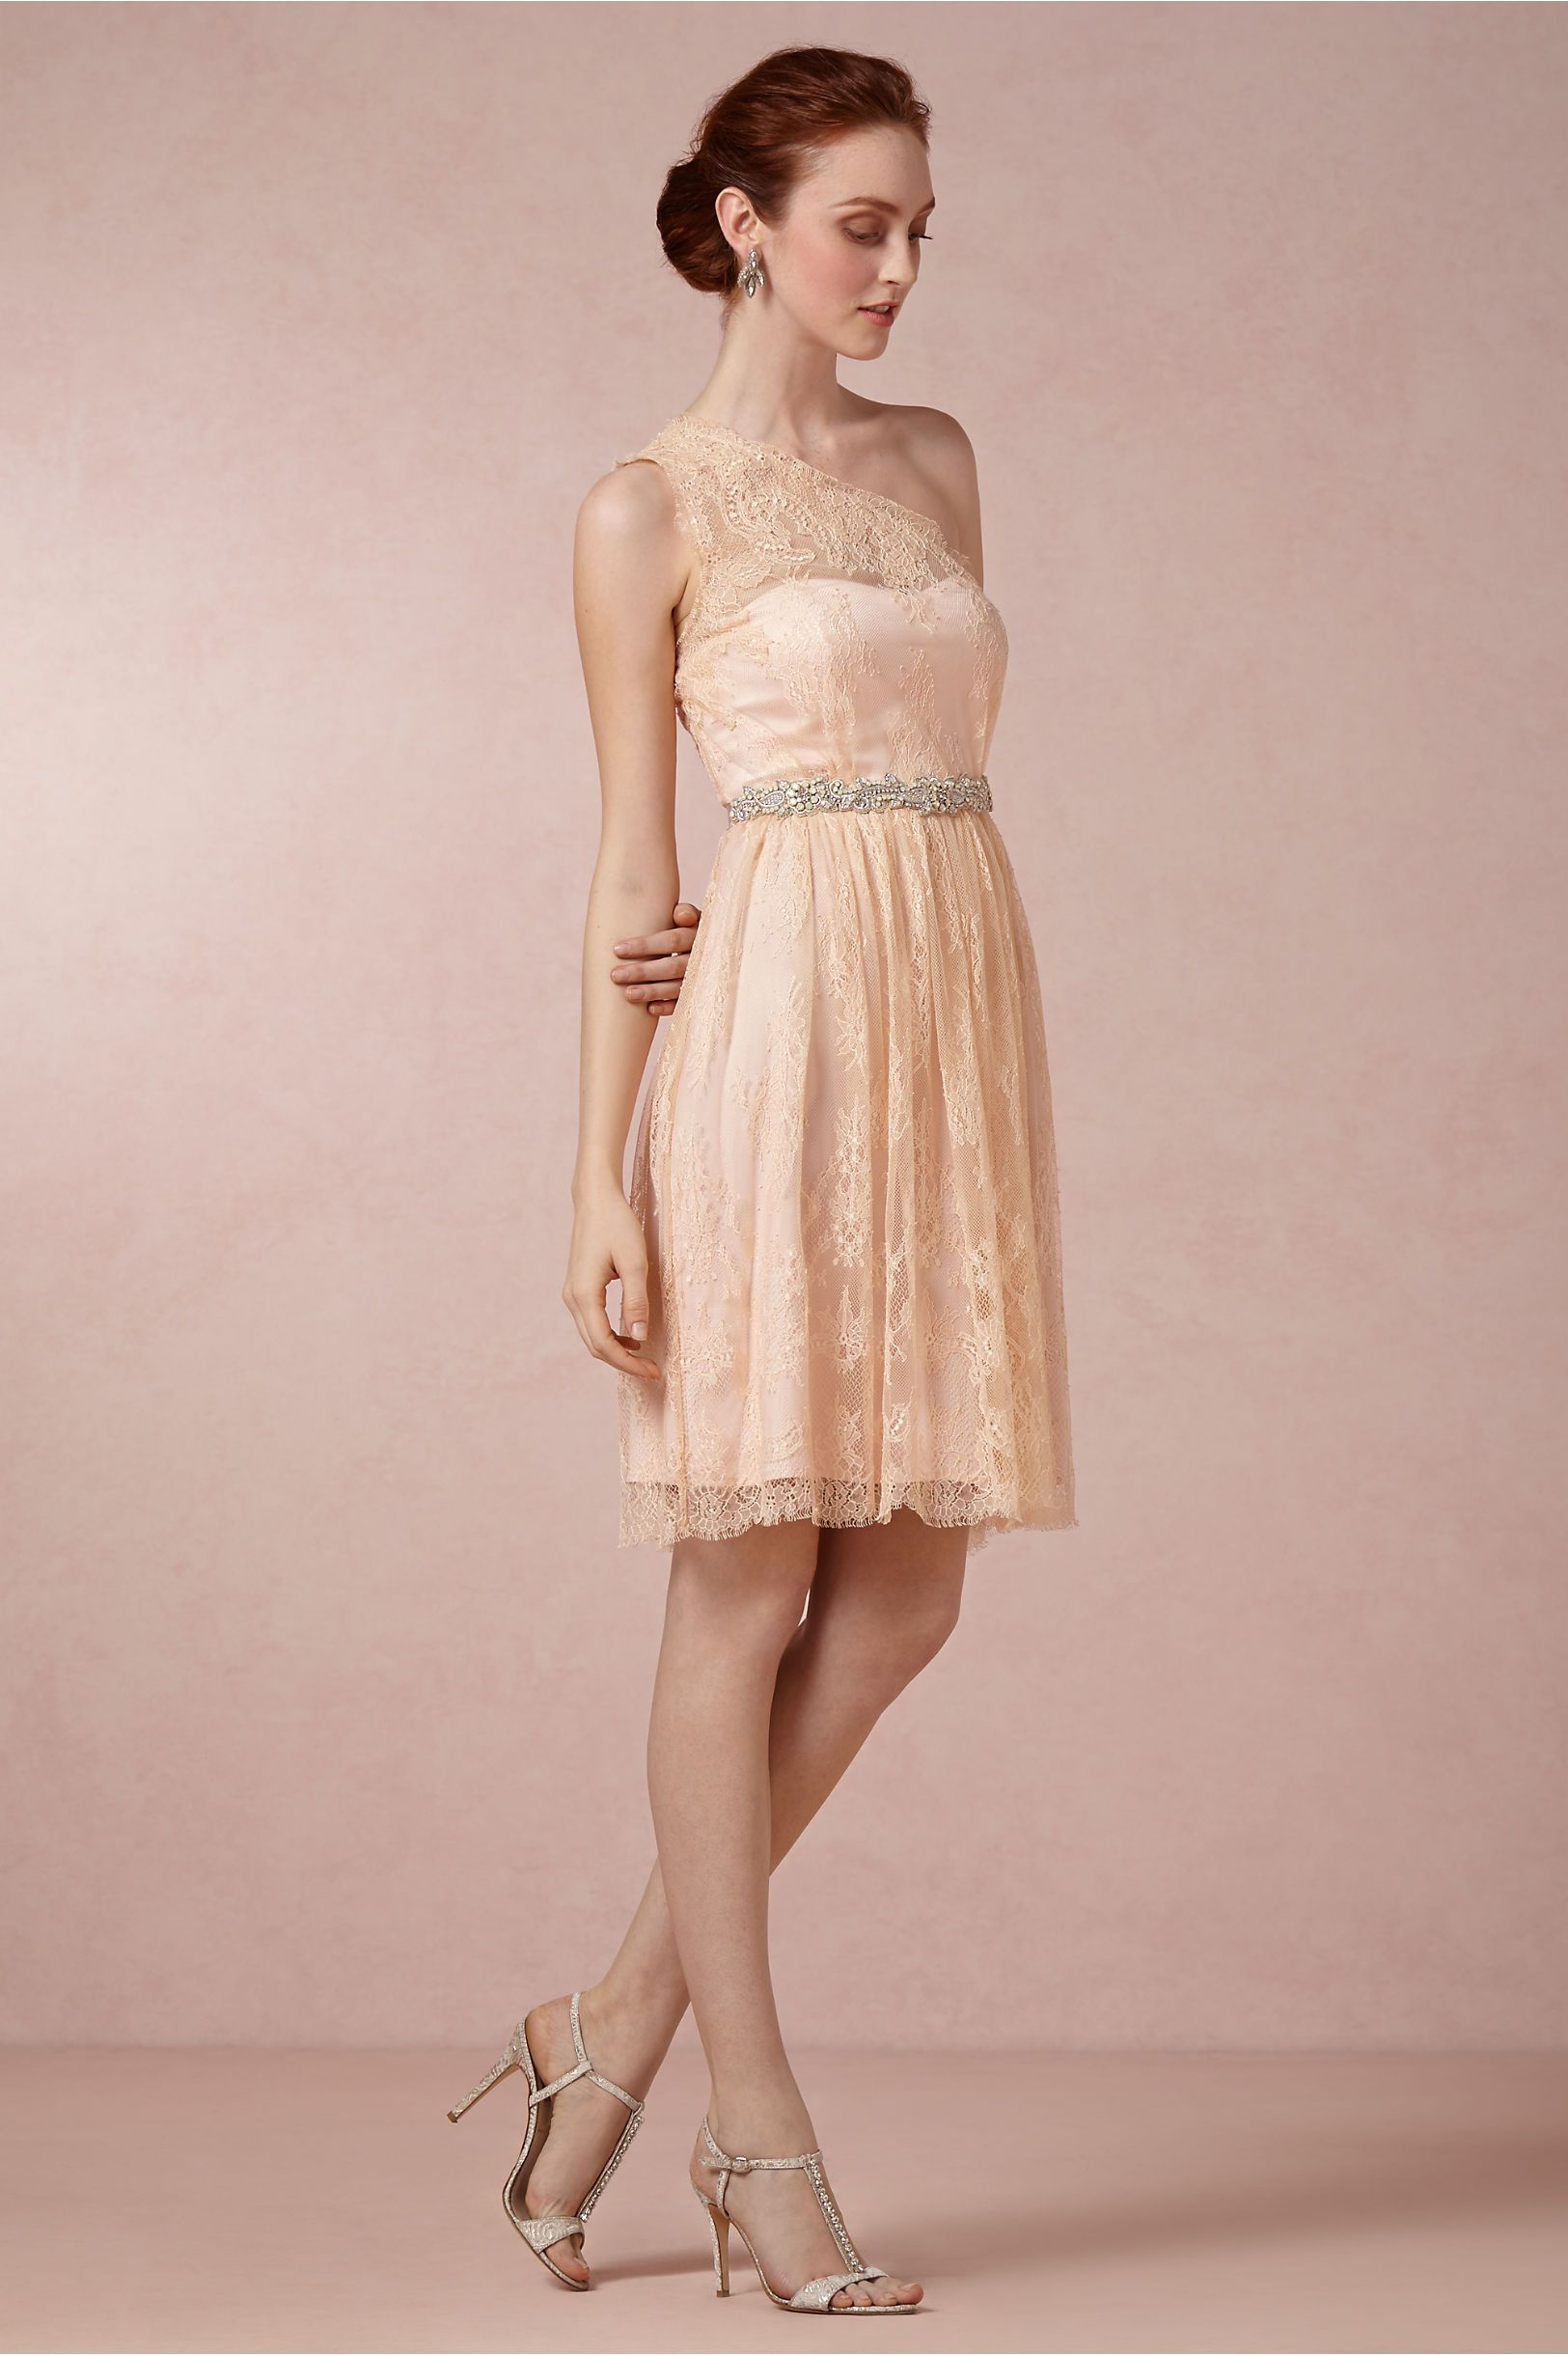 Ariel Dress in Bridal Party & Guests Bridesmaids Dresses at BHLDN ...